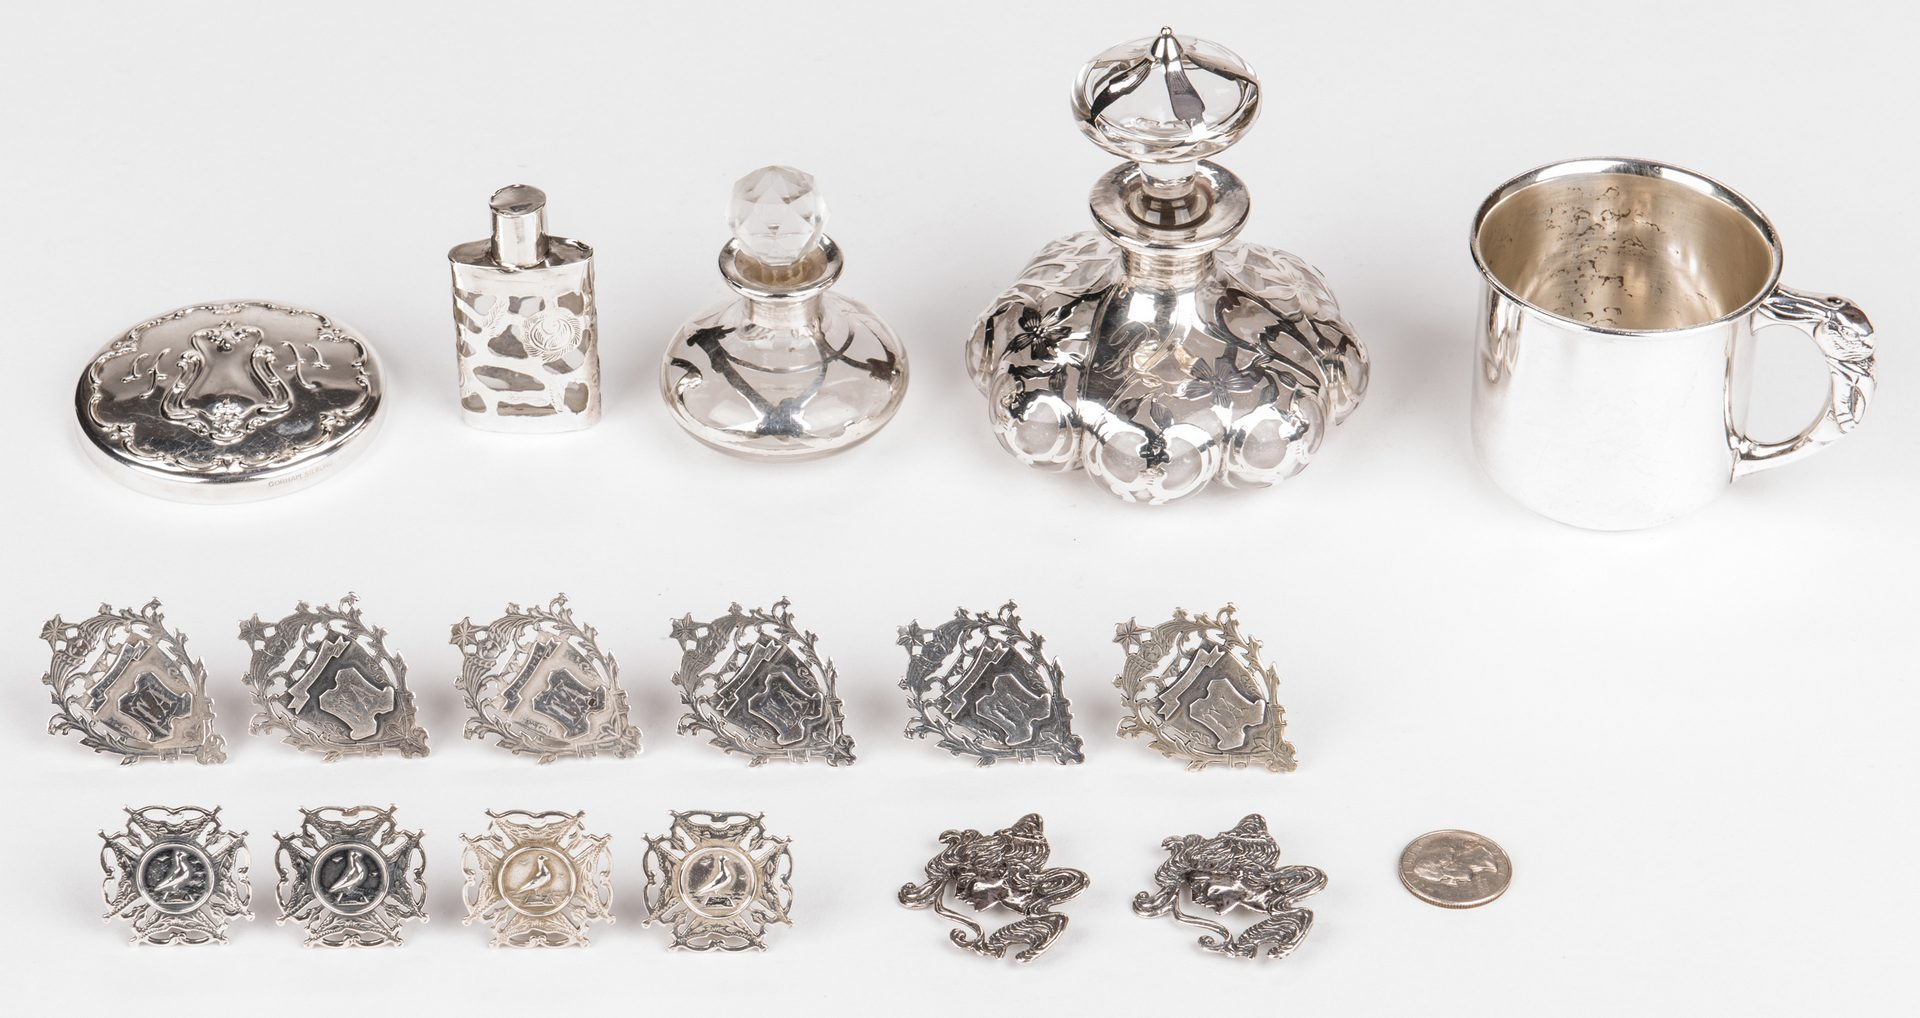 Lot 683: 6 English Sterling Masonic Fob Medals & more, 17 pcs.